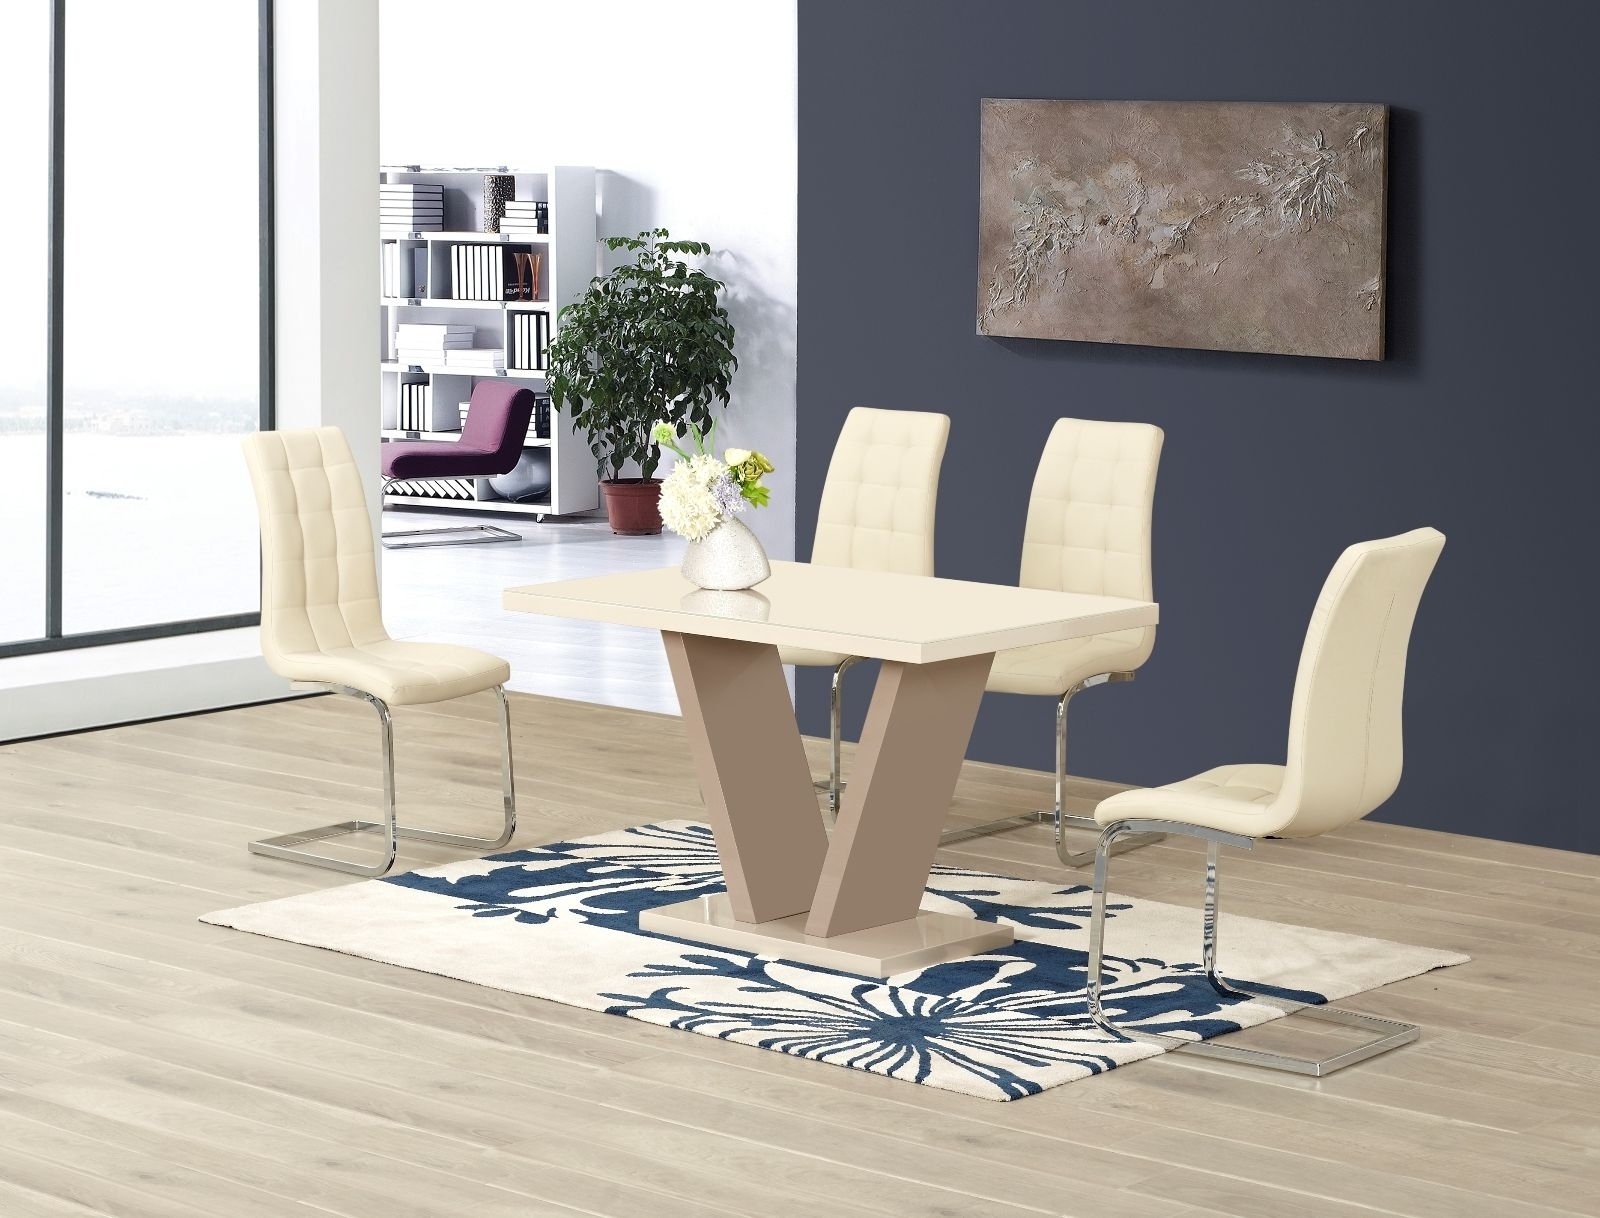 Cream High Gloss Dining Tables Regarding Most Up To Date Ga Vico Cream Gloss Designer 120 Cm Dining Set & 4 Araceli Or Sicily (View 7 of 25)